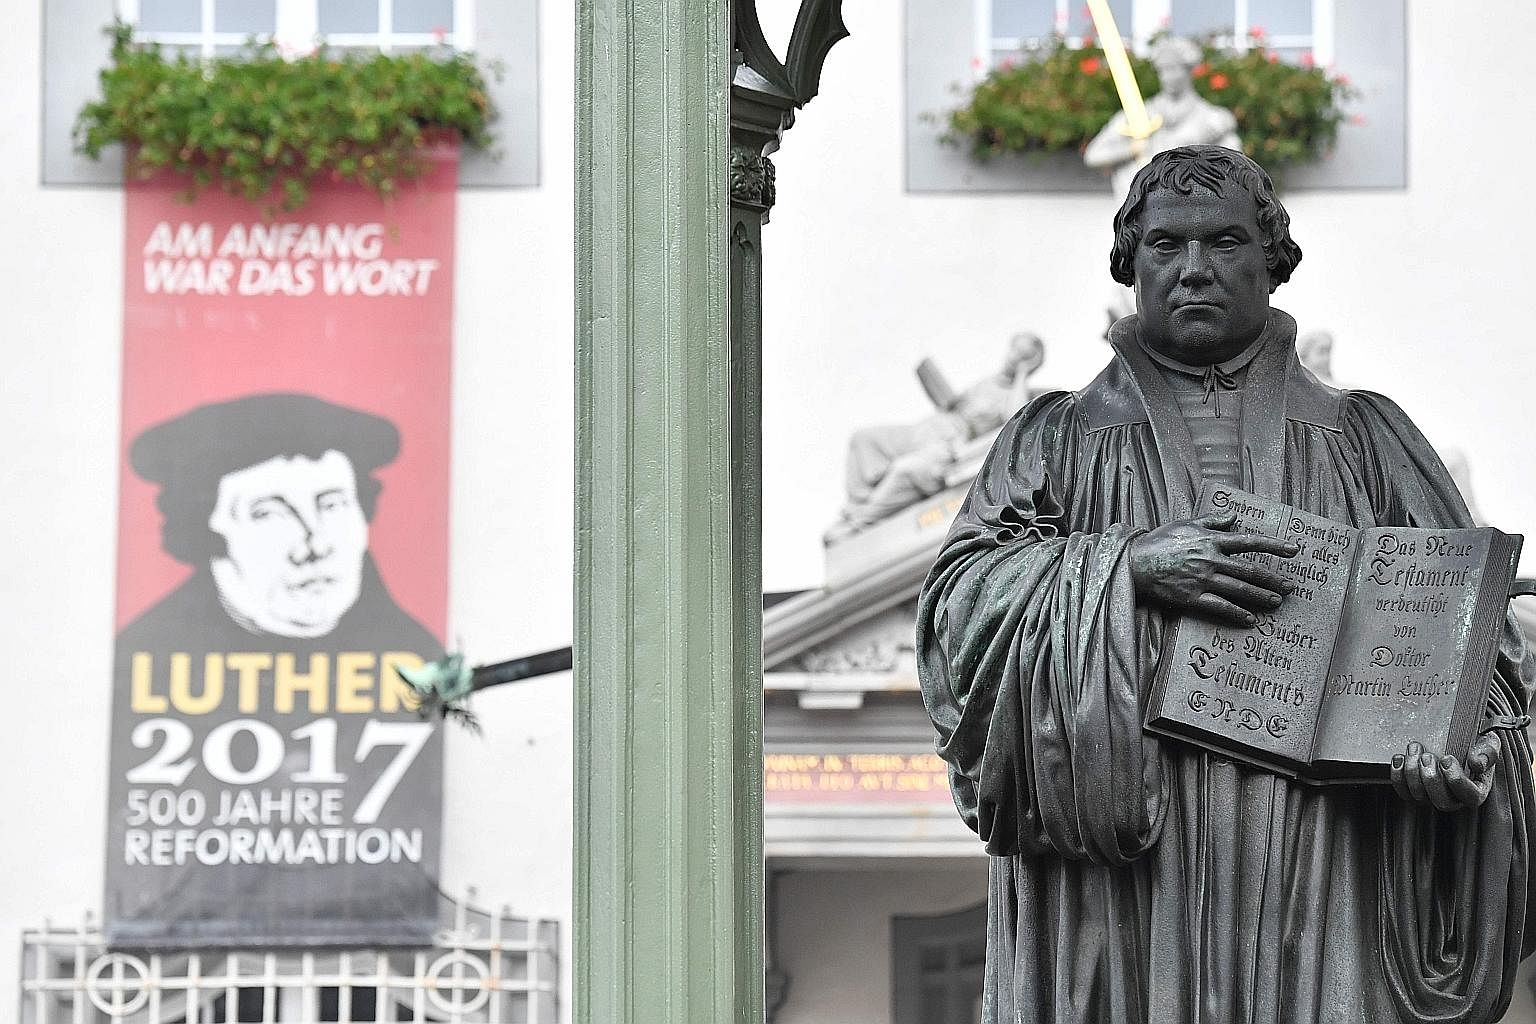 A statue of theologian Martin Luther holding his German translation of the Bible in Wittenberg, Germany, where celebrations took place on Tuesday to mark the 500th anniversary of the Protestant Reformation.